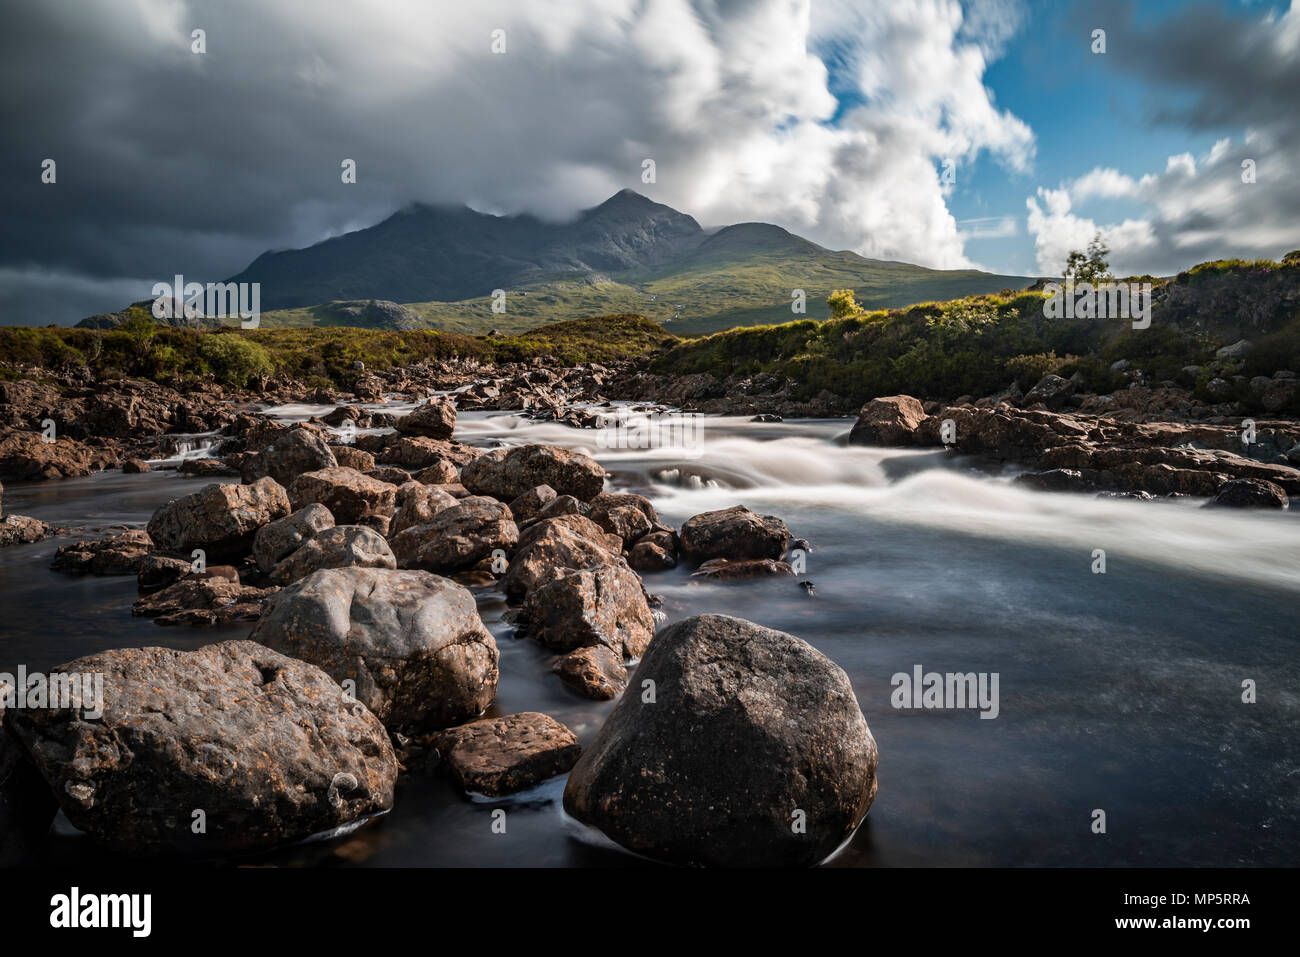 Scottish highlands - River Sligachan, Isle of Skye, Scotland, UK with the Black Cuillin mountains, Cuillins, in the distance - Stock Image